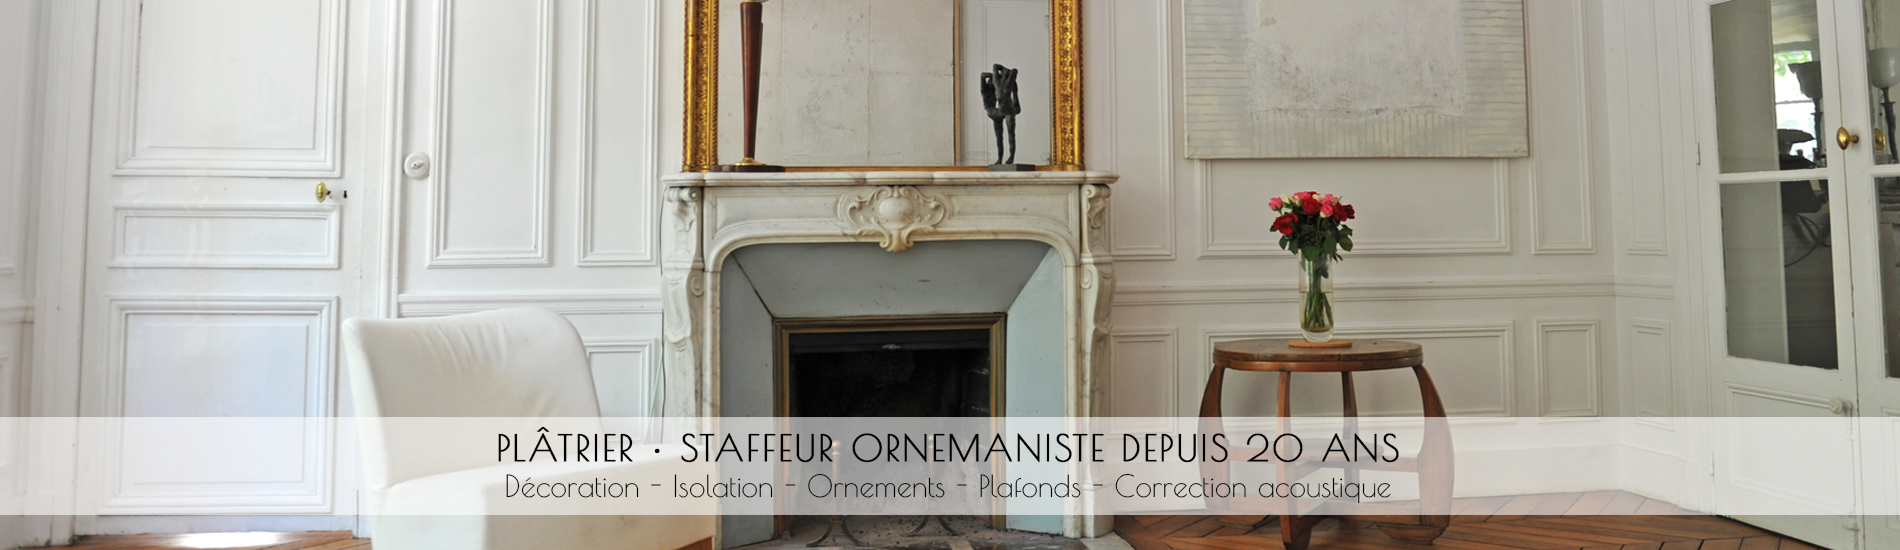 Travaux de restauration int�rieur